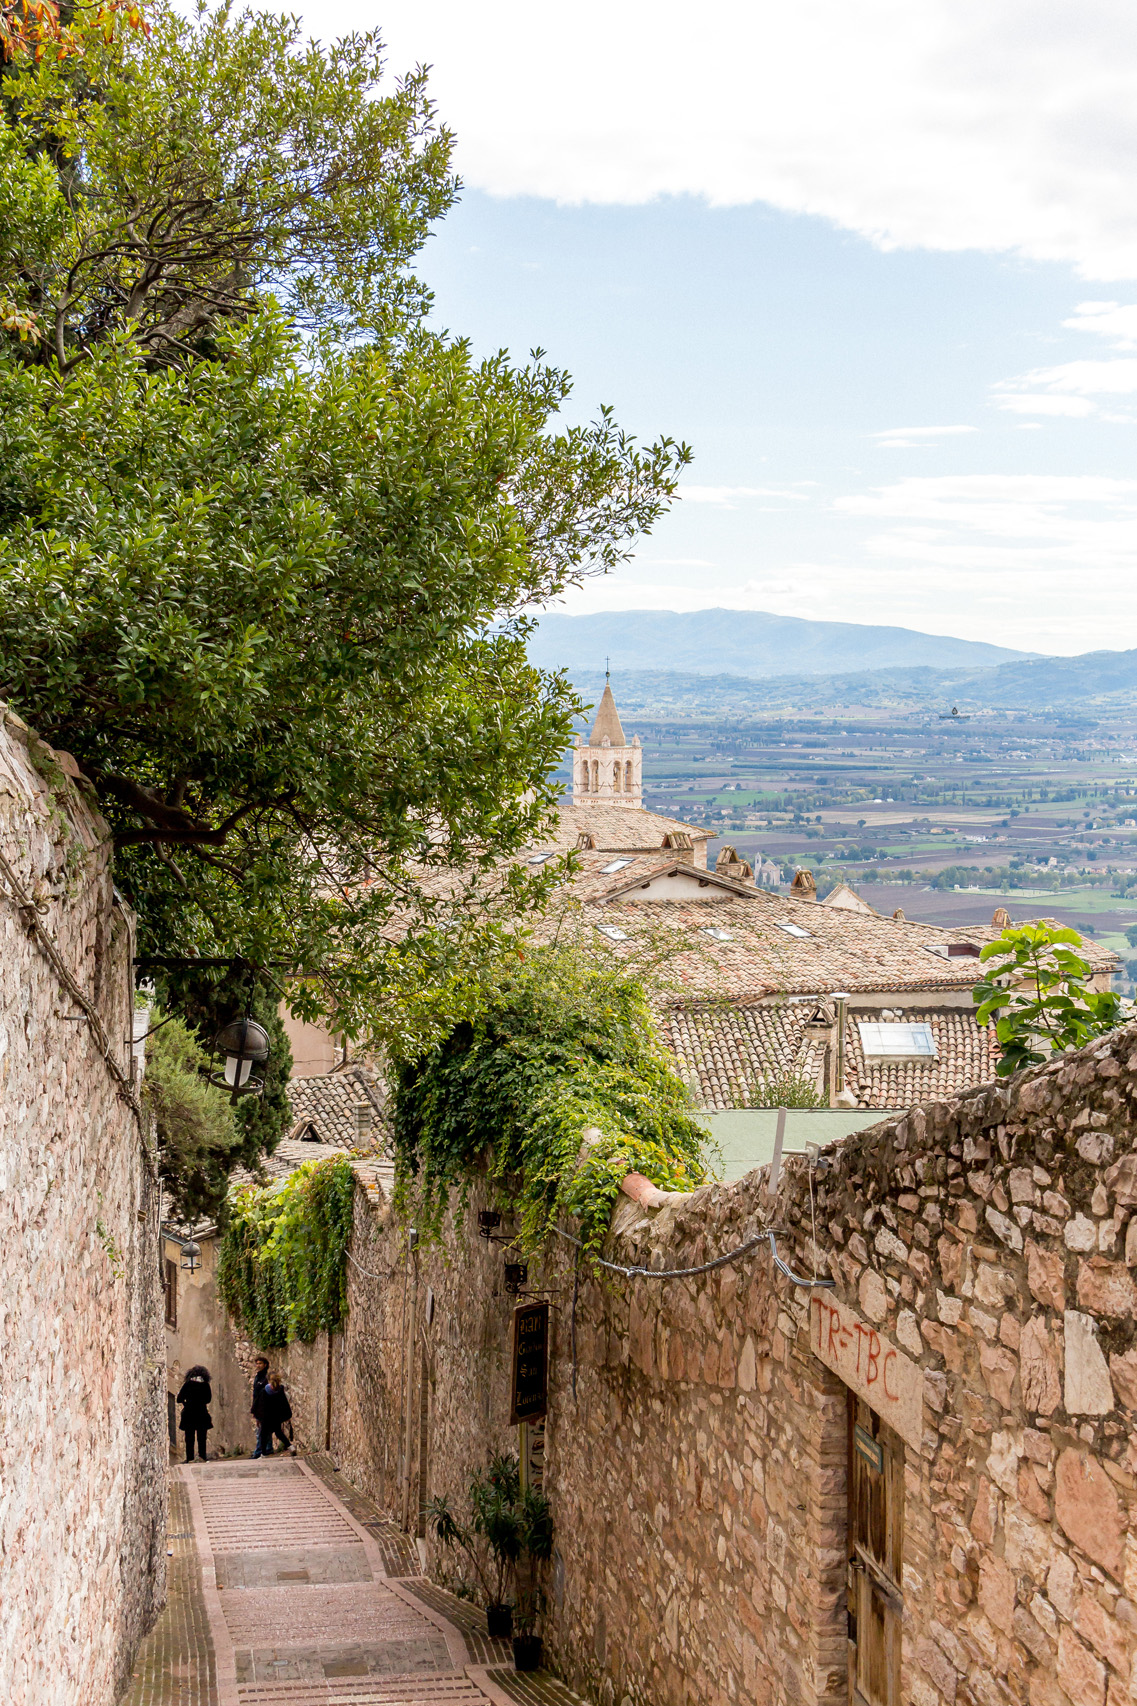 Streets of Assisi, Umbria